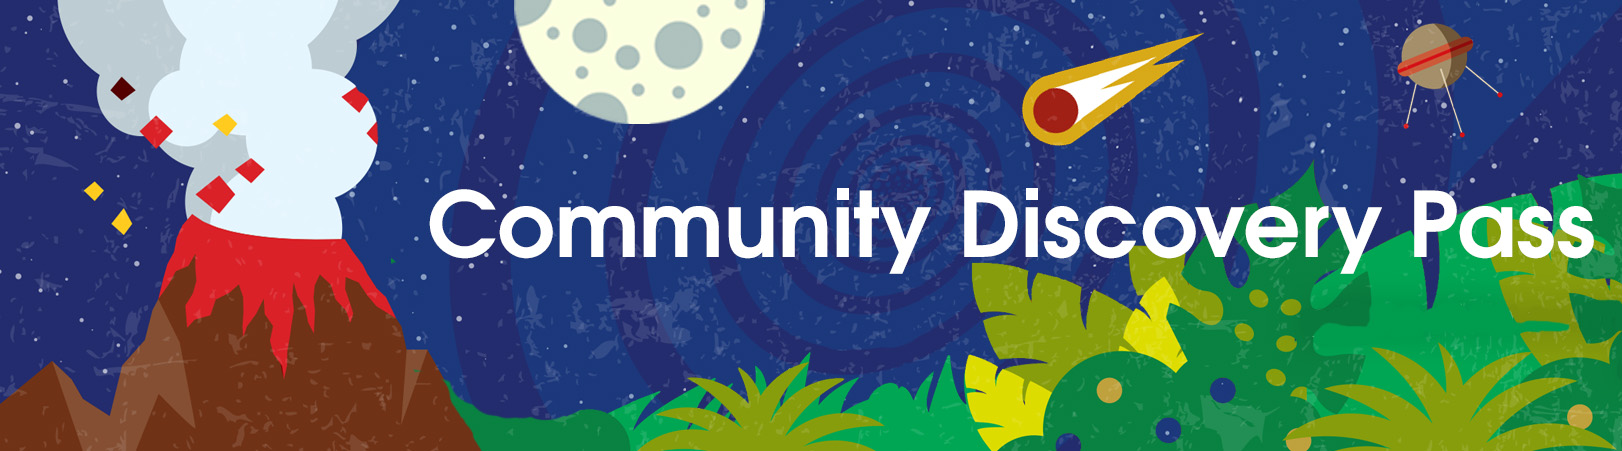 Community Discovery Pass Banner.jpg